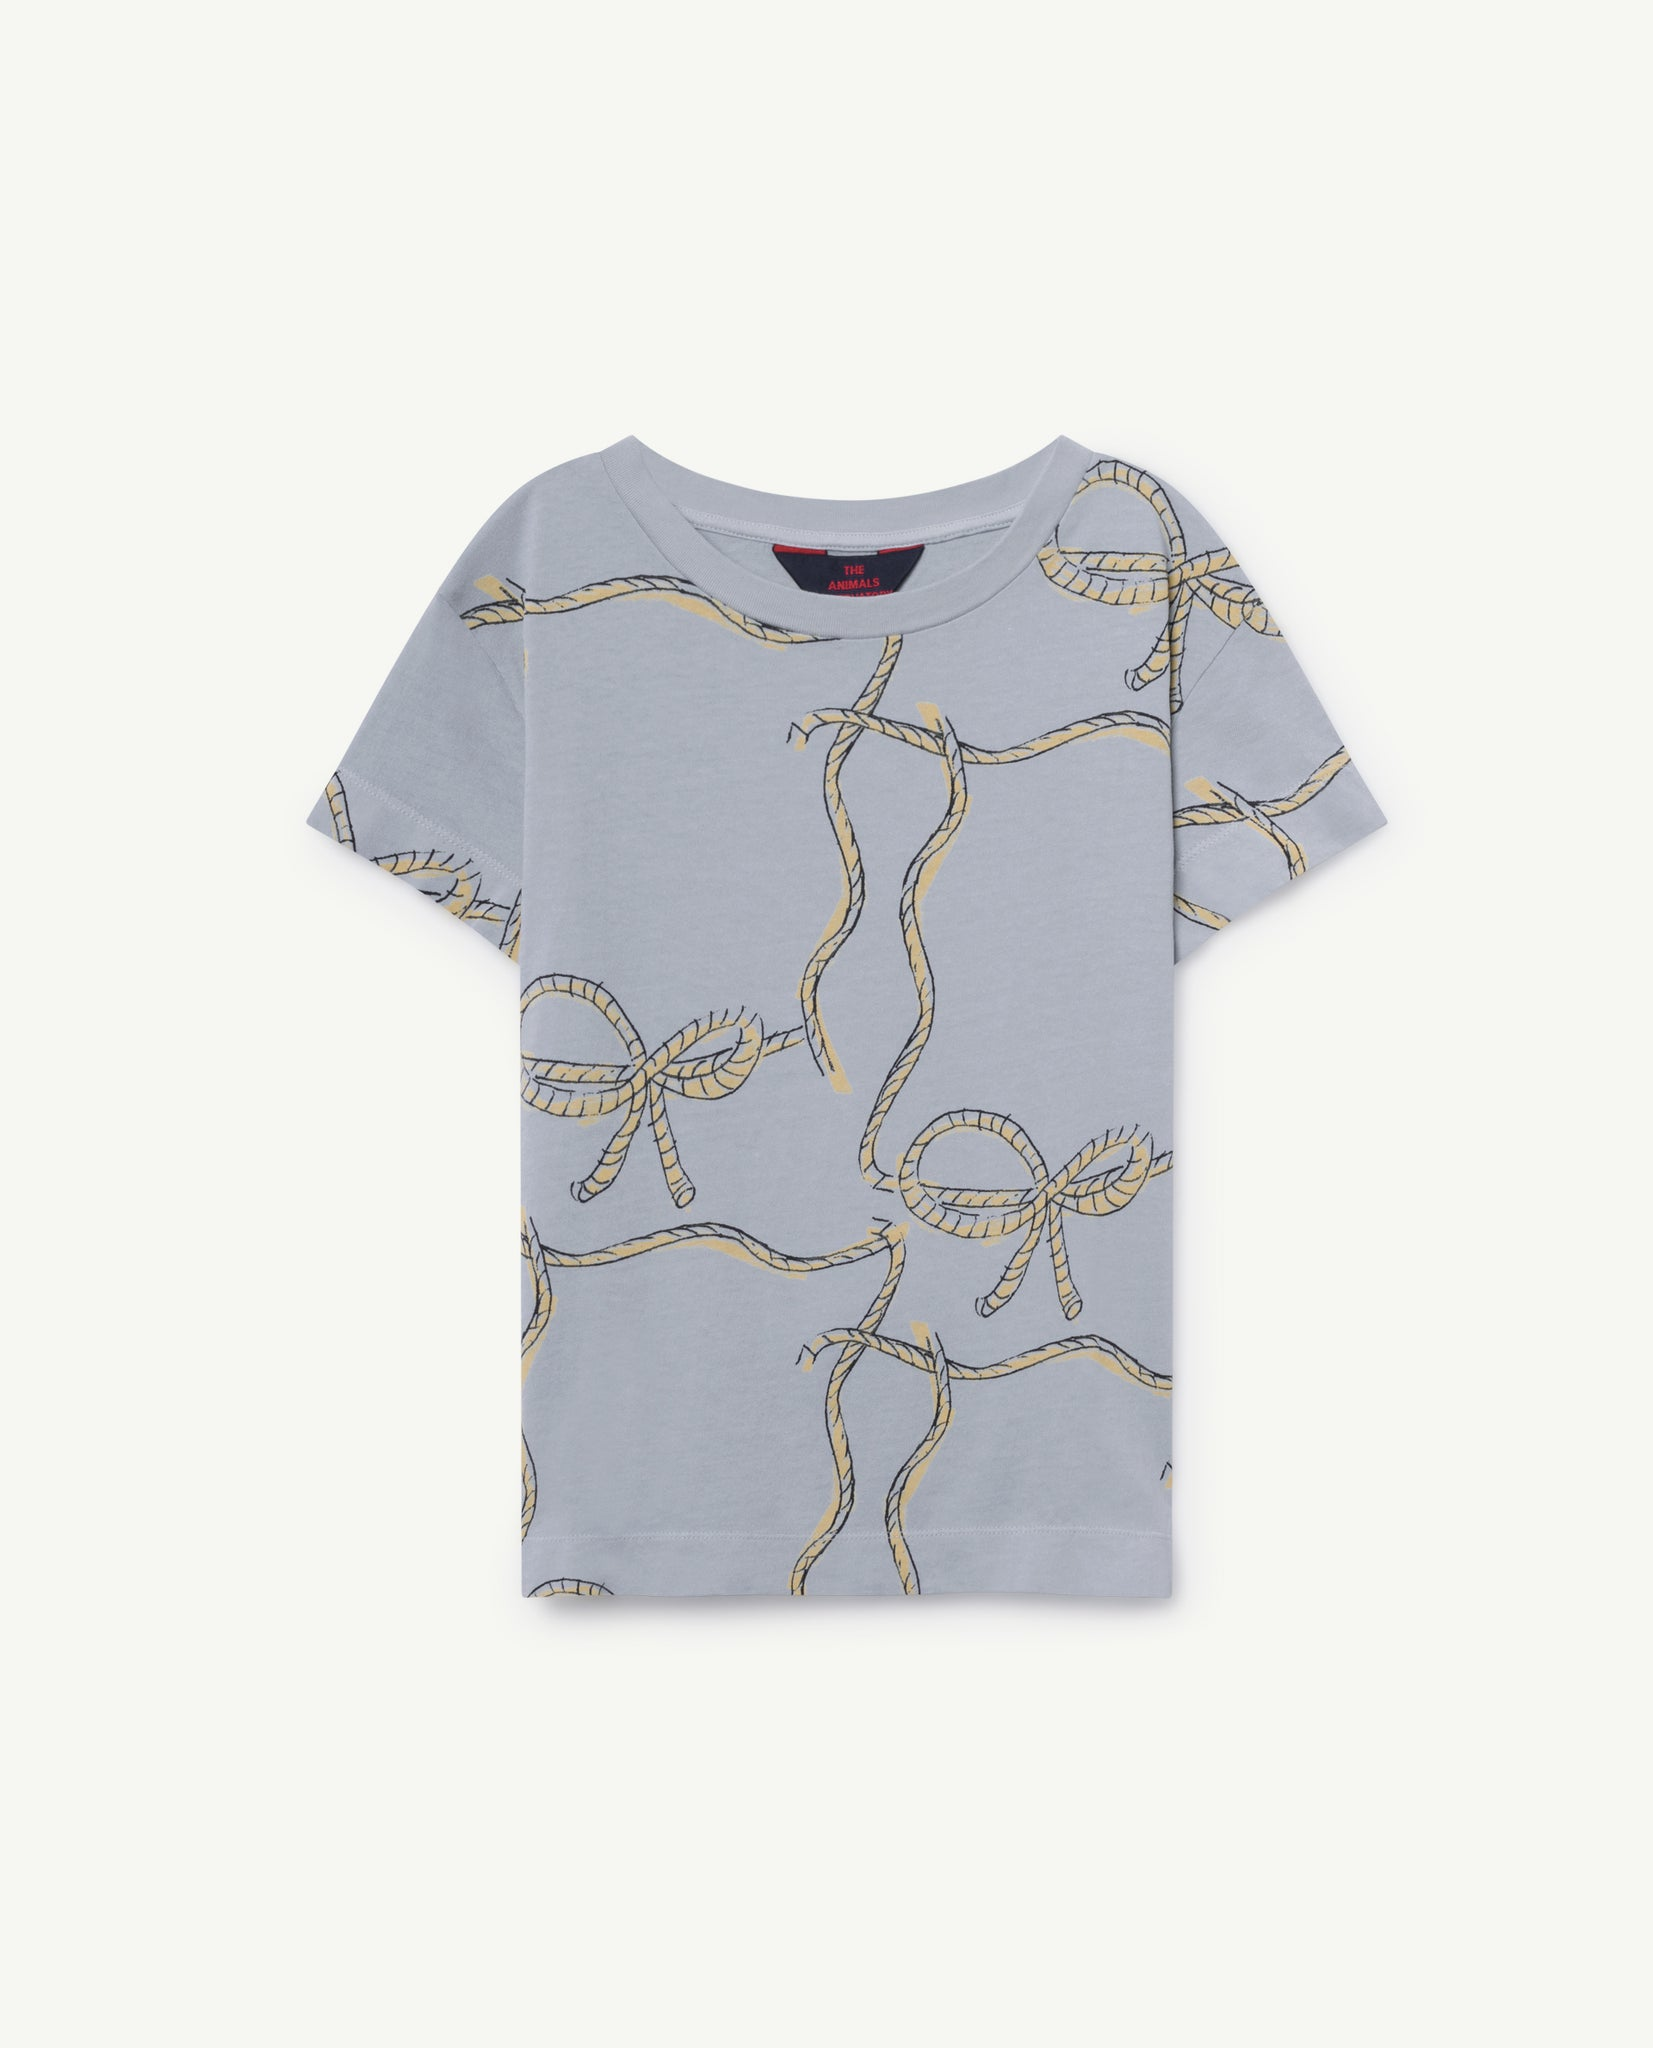 ROOSTER KIDS T-SHIRT // BLUE ROPES